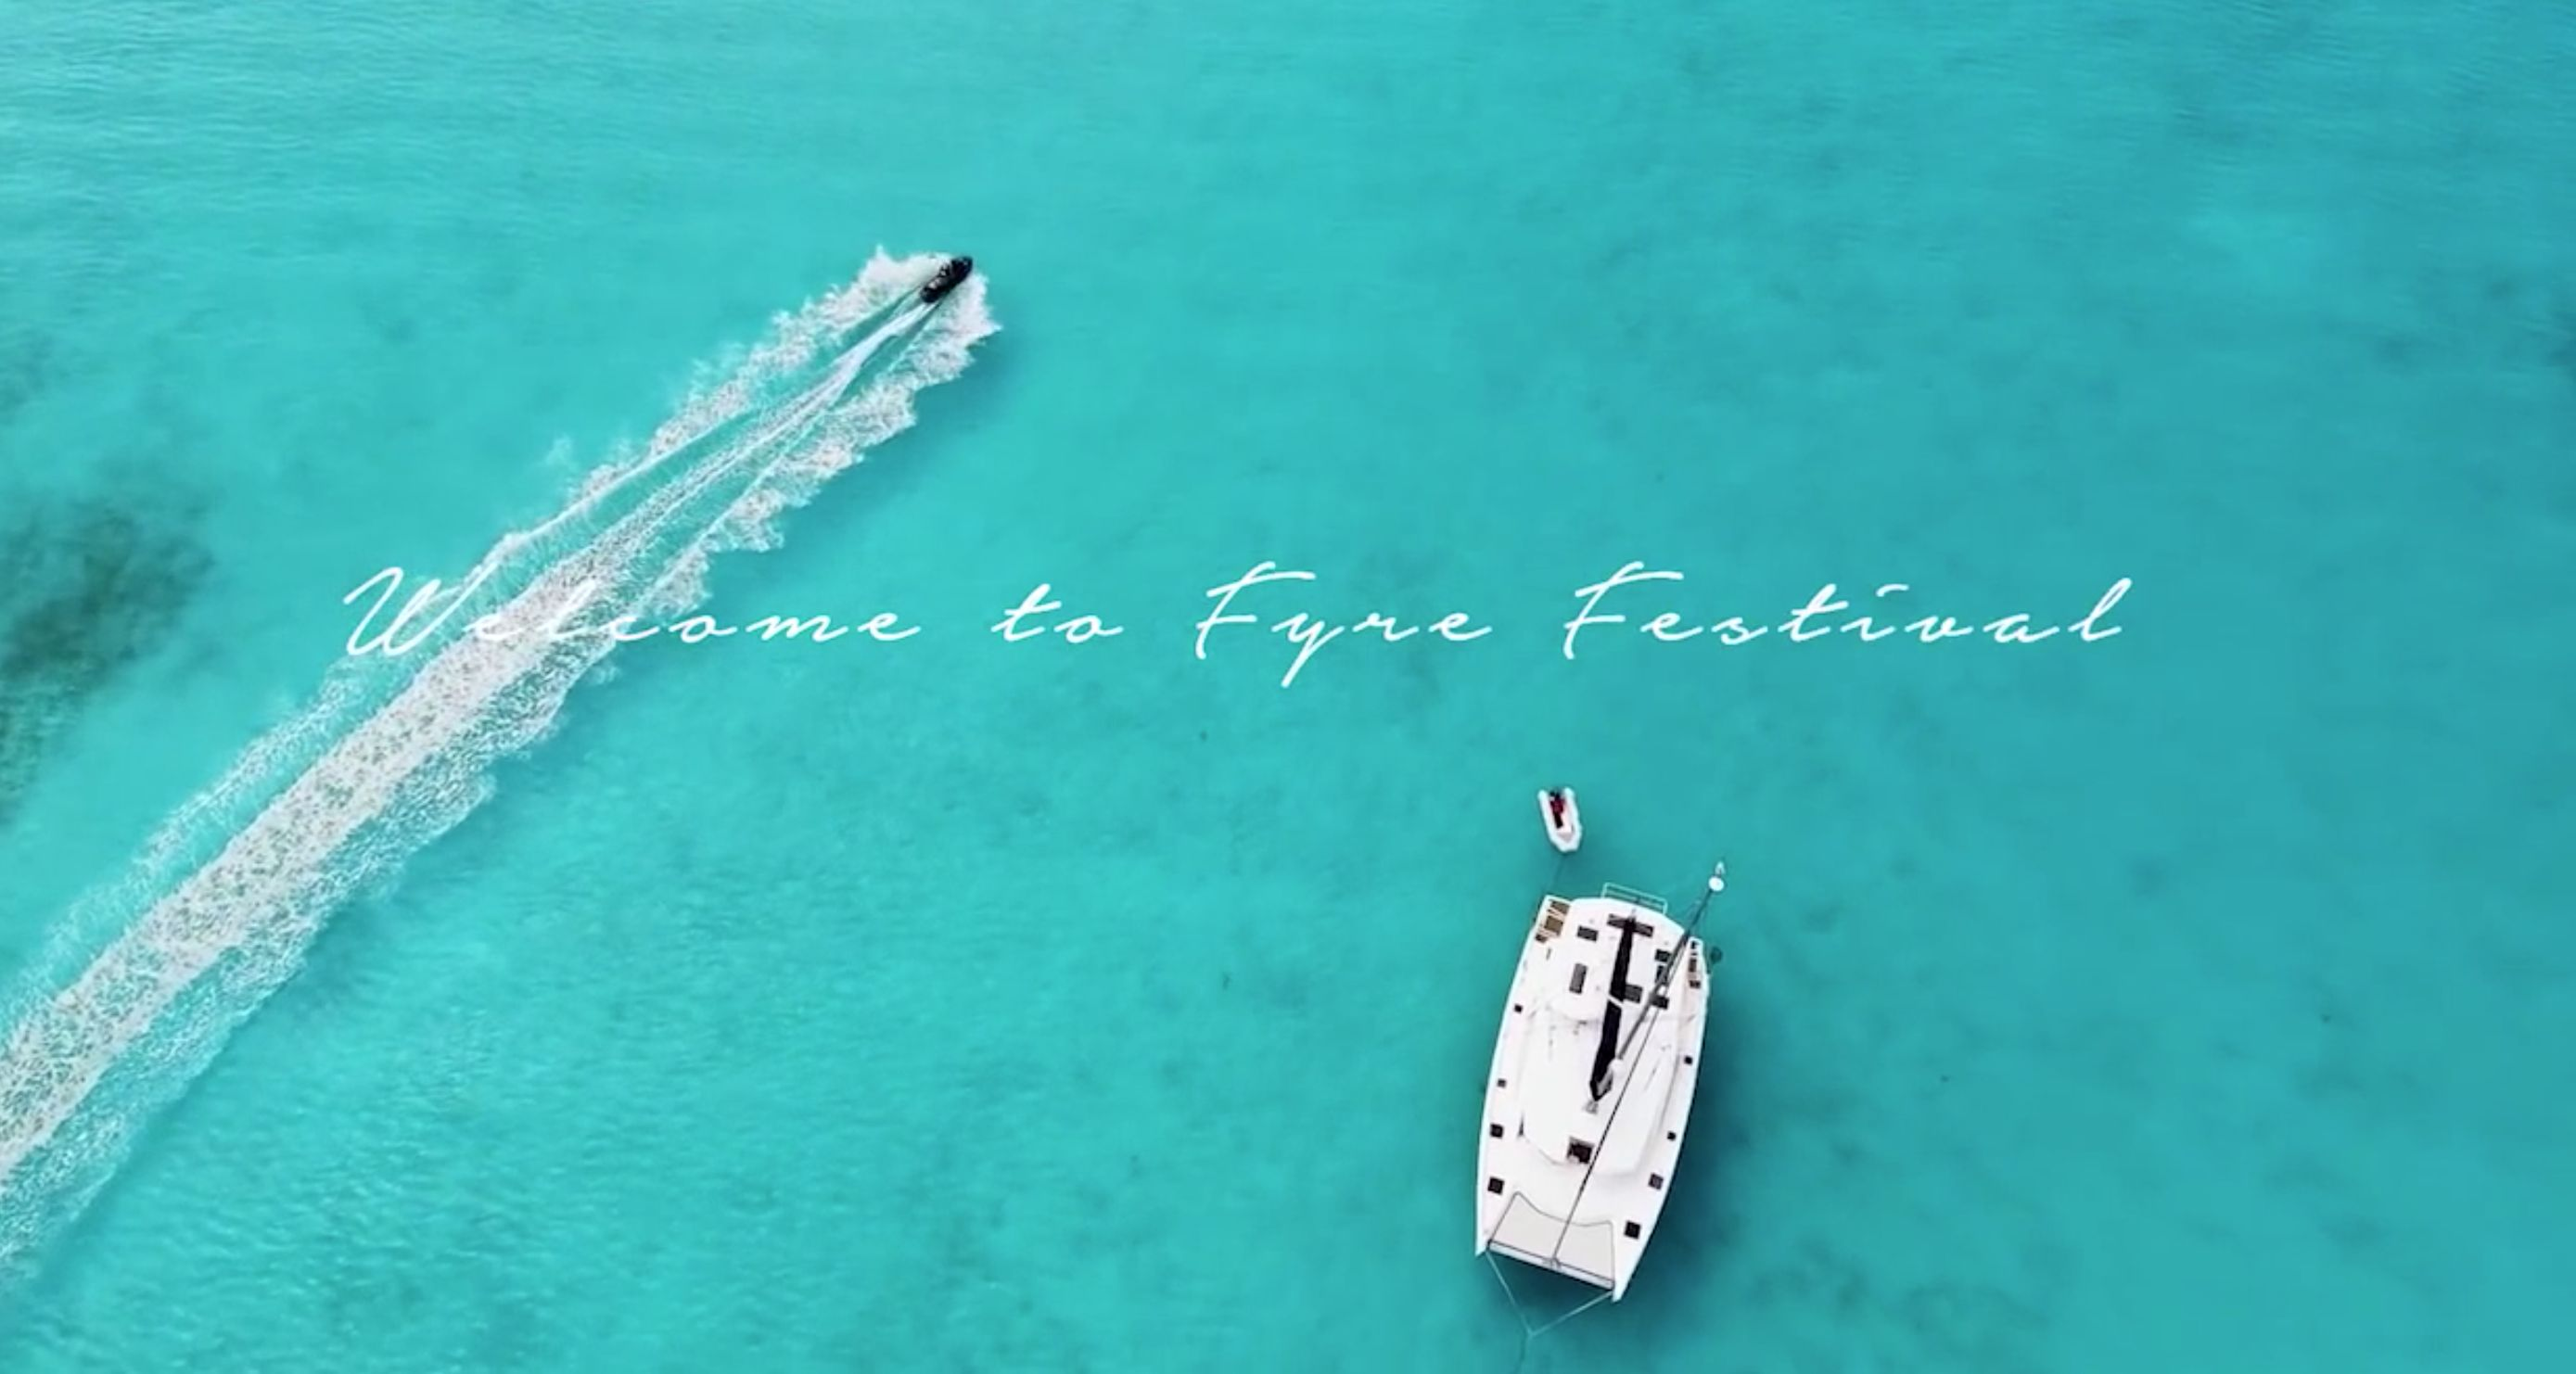 Infamous Fyre Festival Under FBI Investigation For